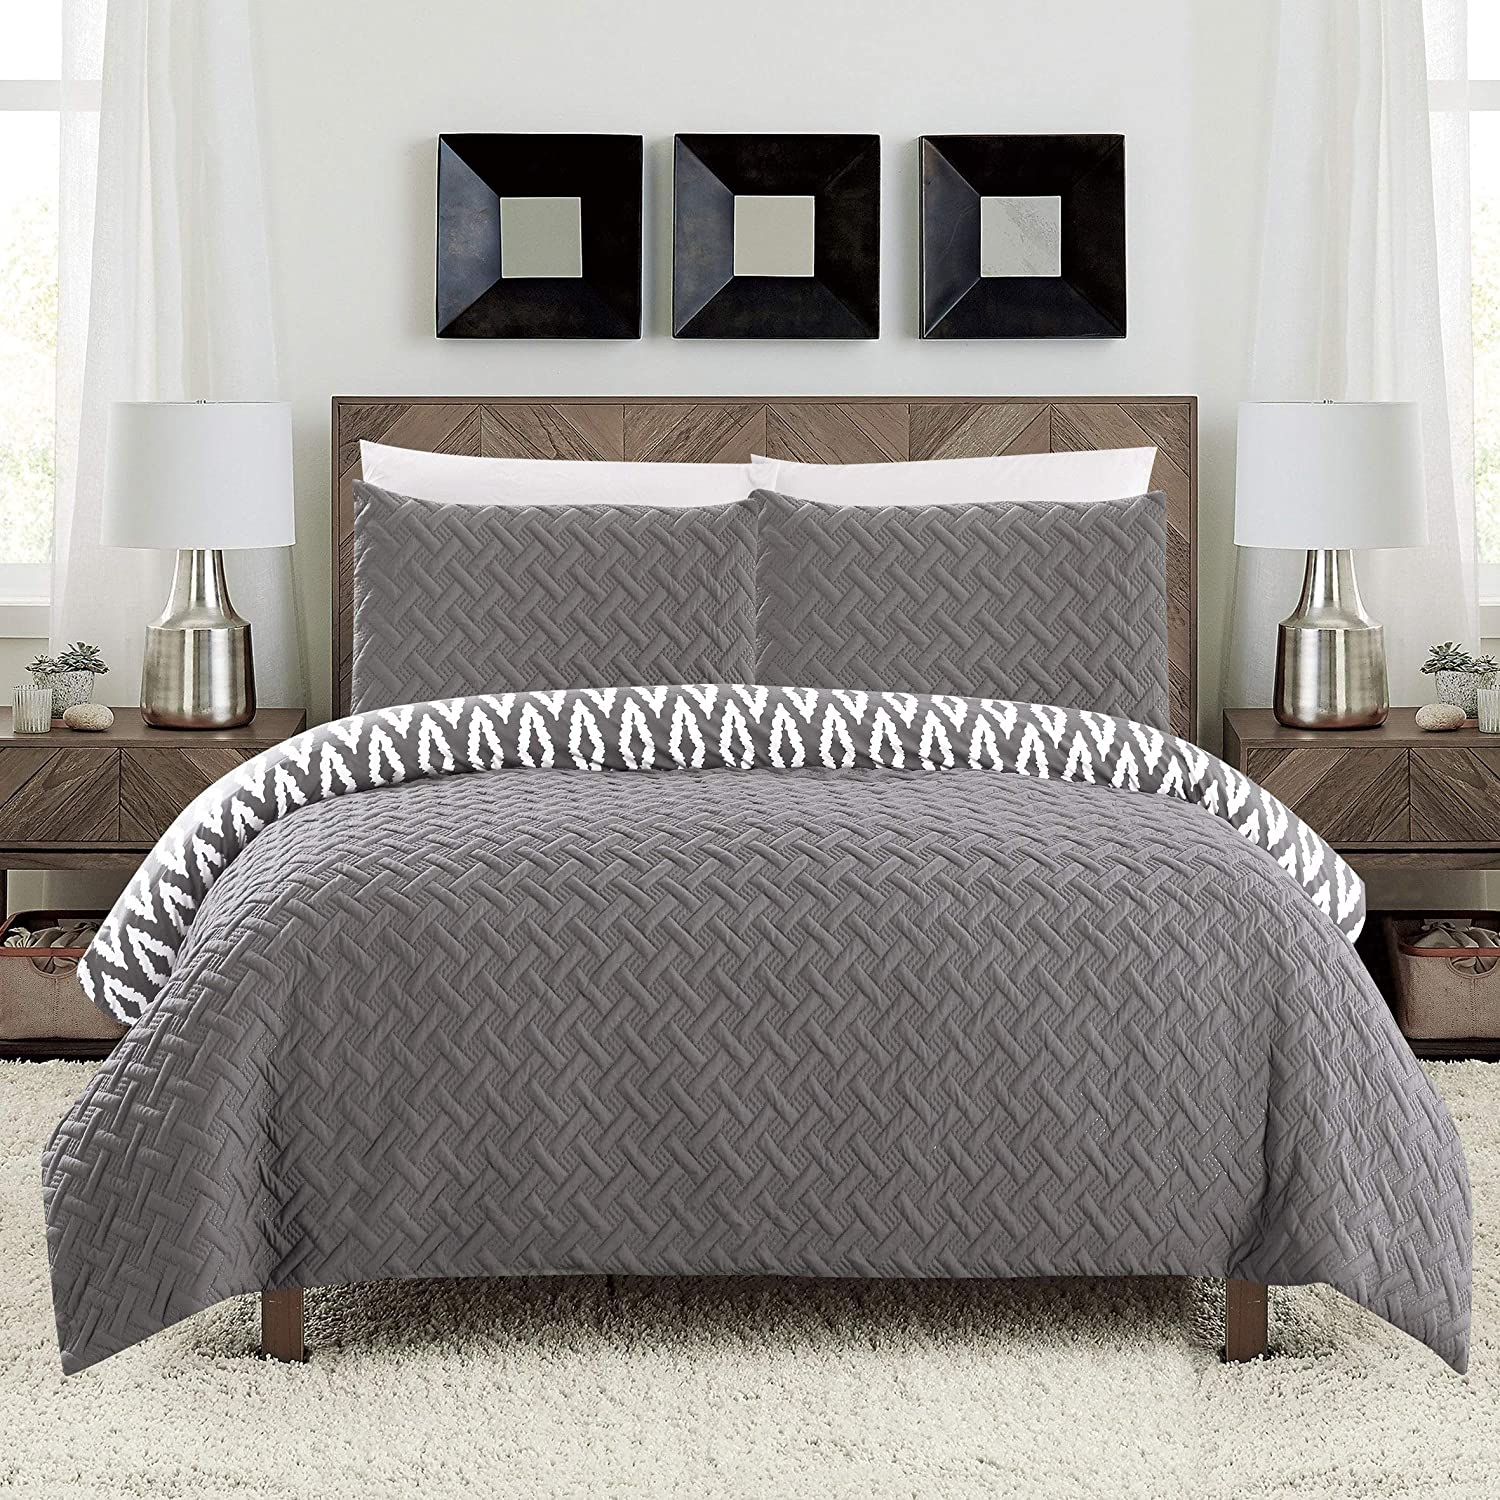 Chic Over item handling ☆ Home Sabina 3 Max 47% OFF Piece Se Comforter Reversible and Embroidered